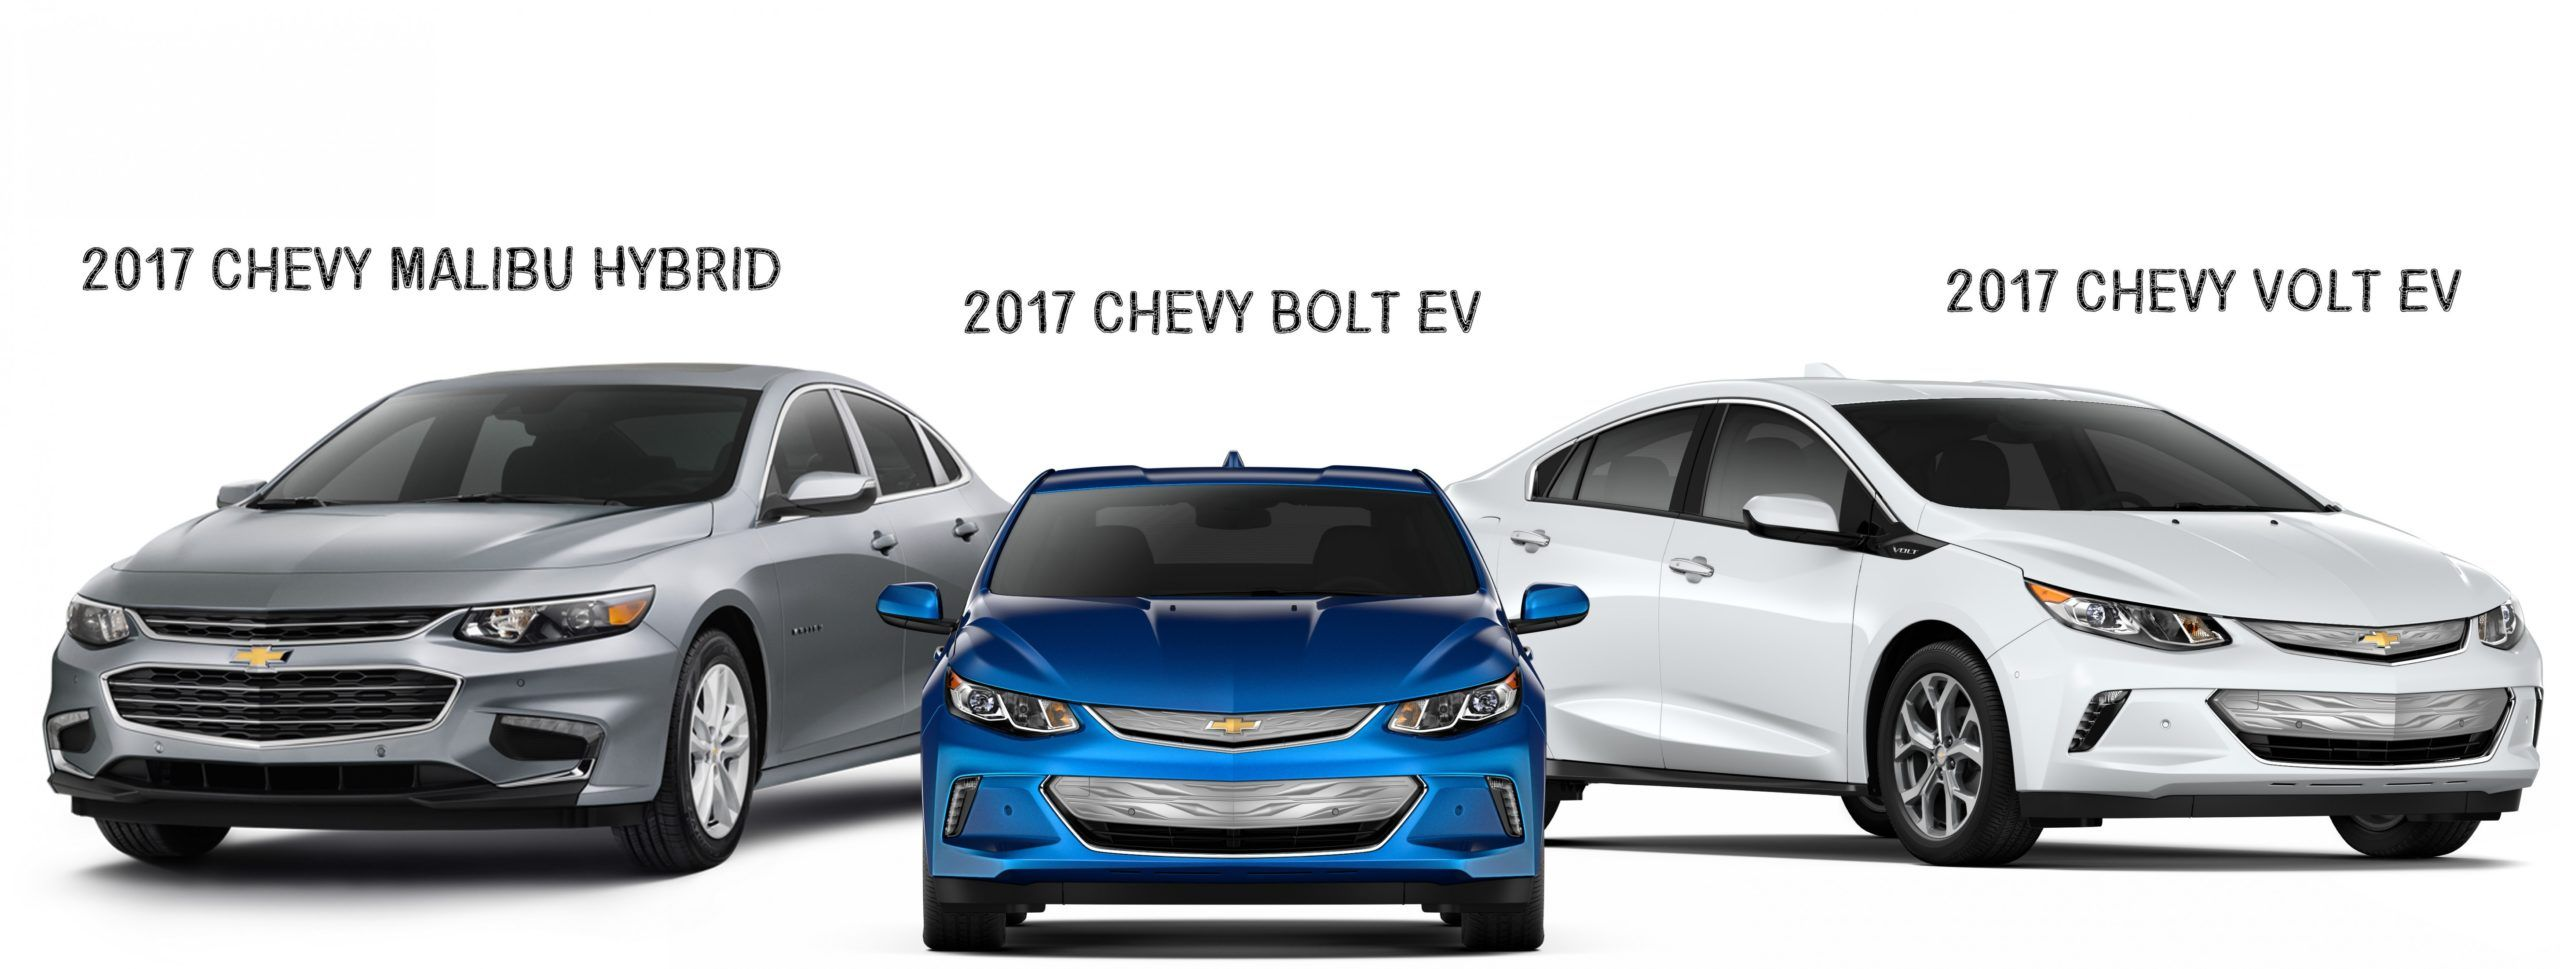 How To Have A Fantastic 2020 Chevrolet Volt Design With Minimal